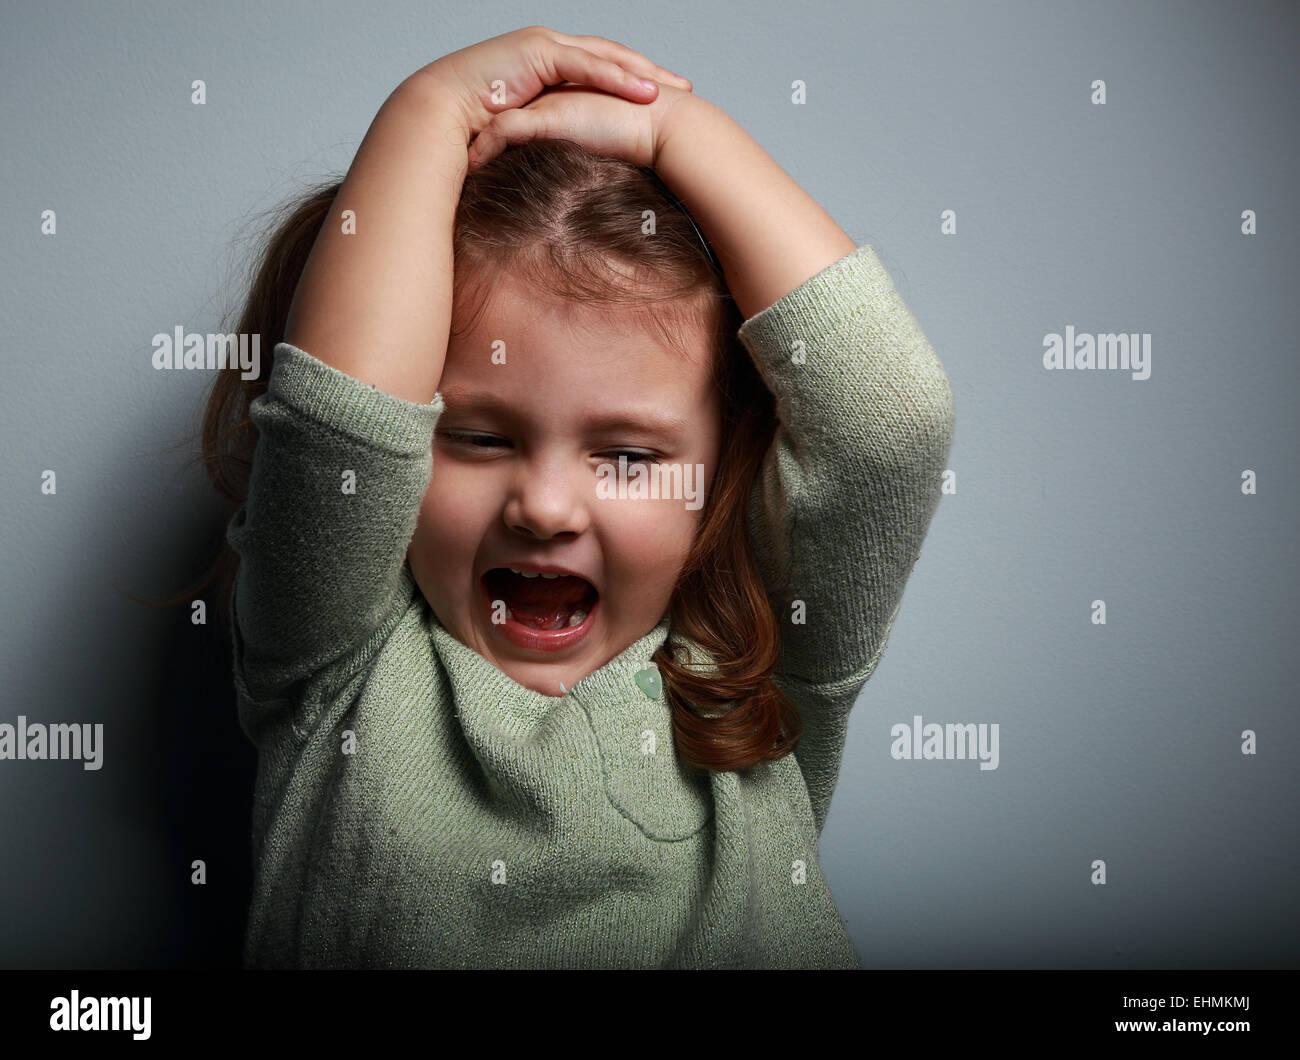 Angry kid girl shouting with open mouth and holding hands the head on dark background - Stock Image